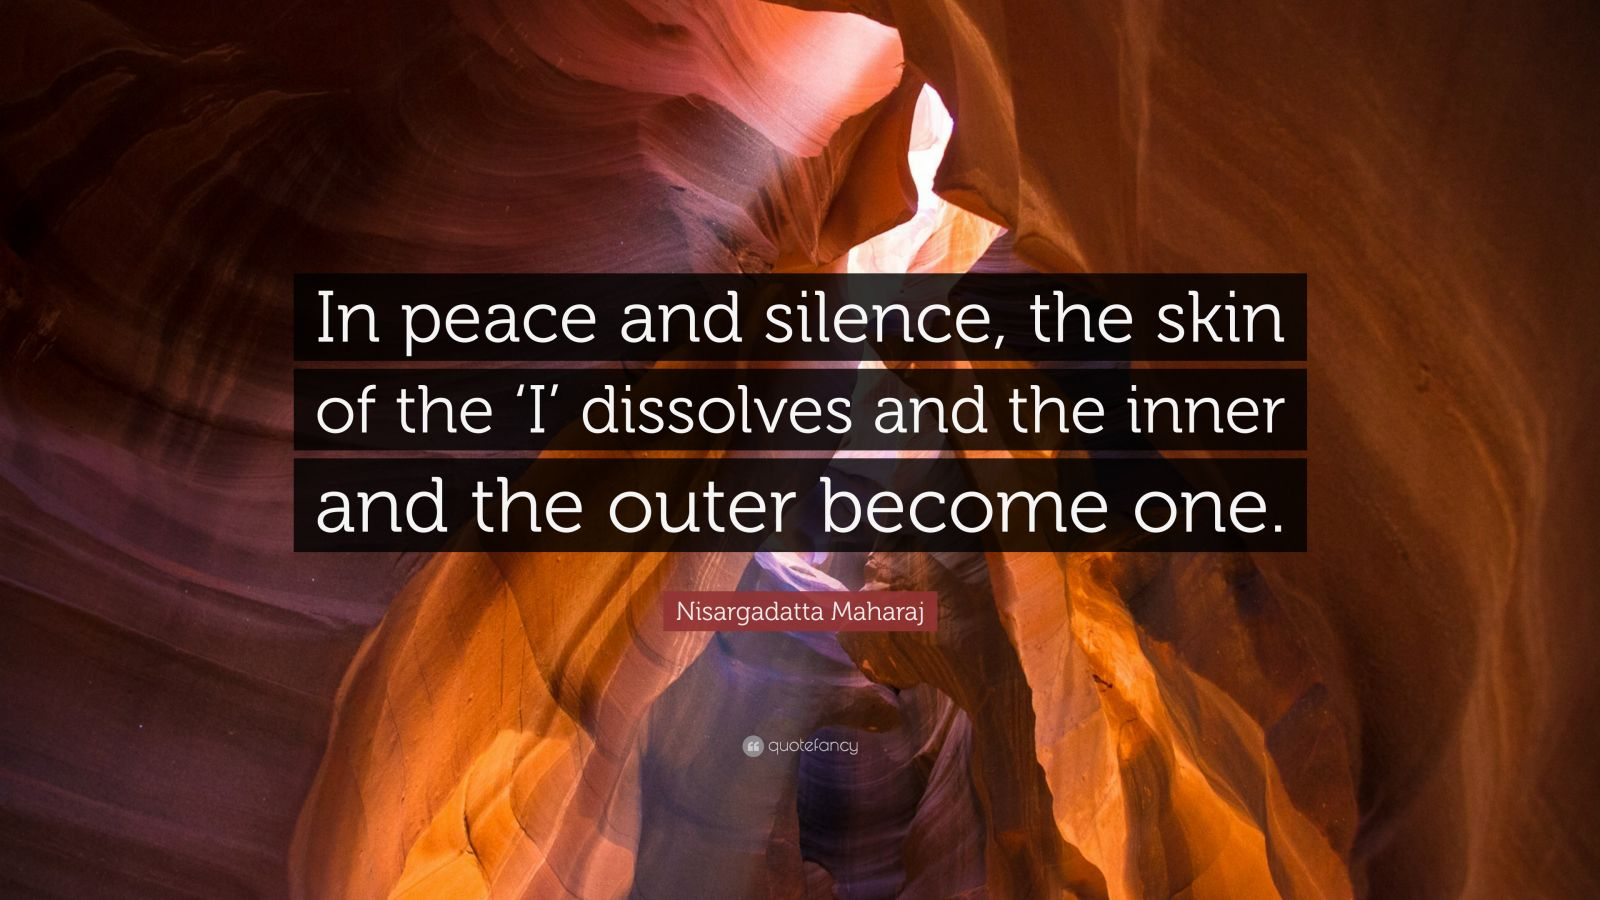 """Nisargadatta Maharaj Quote: """"In peace and silence, the skin of the 'I' dissolves and the inner and the outer become one."""""""